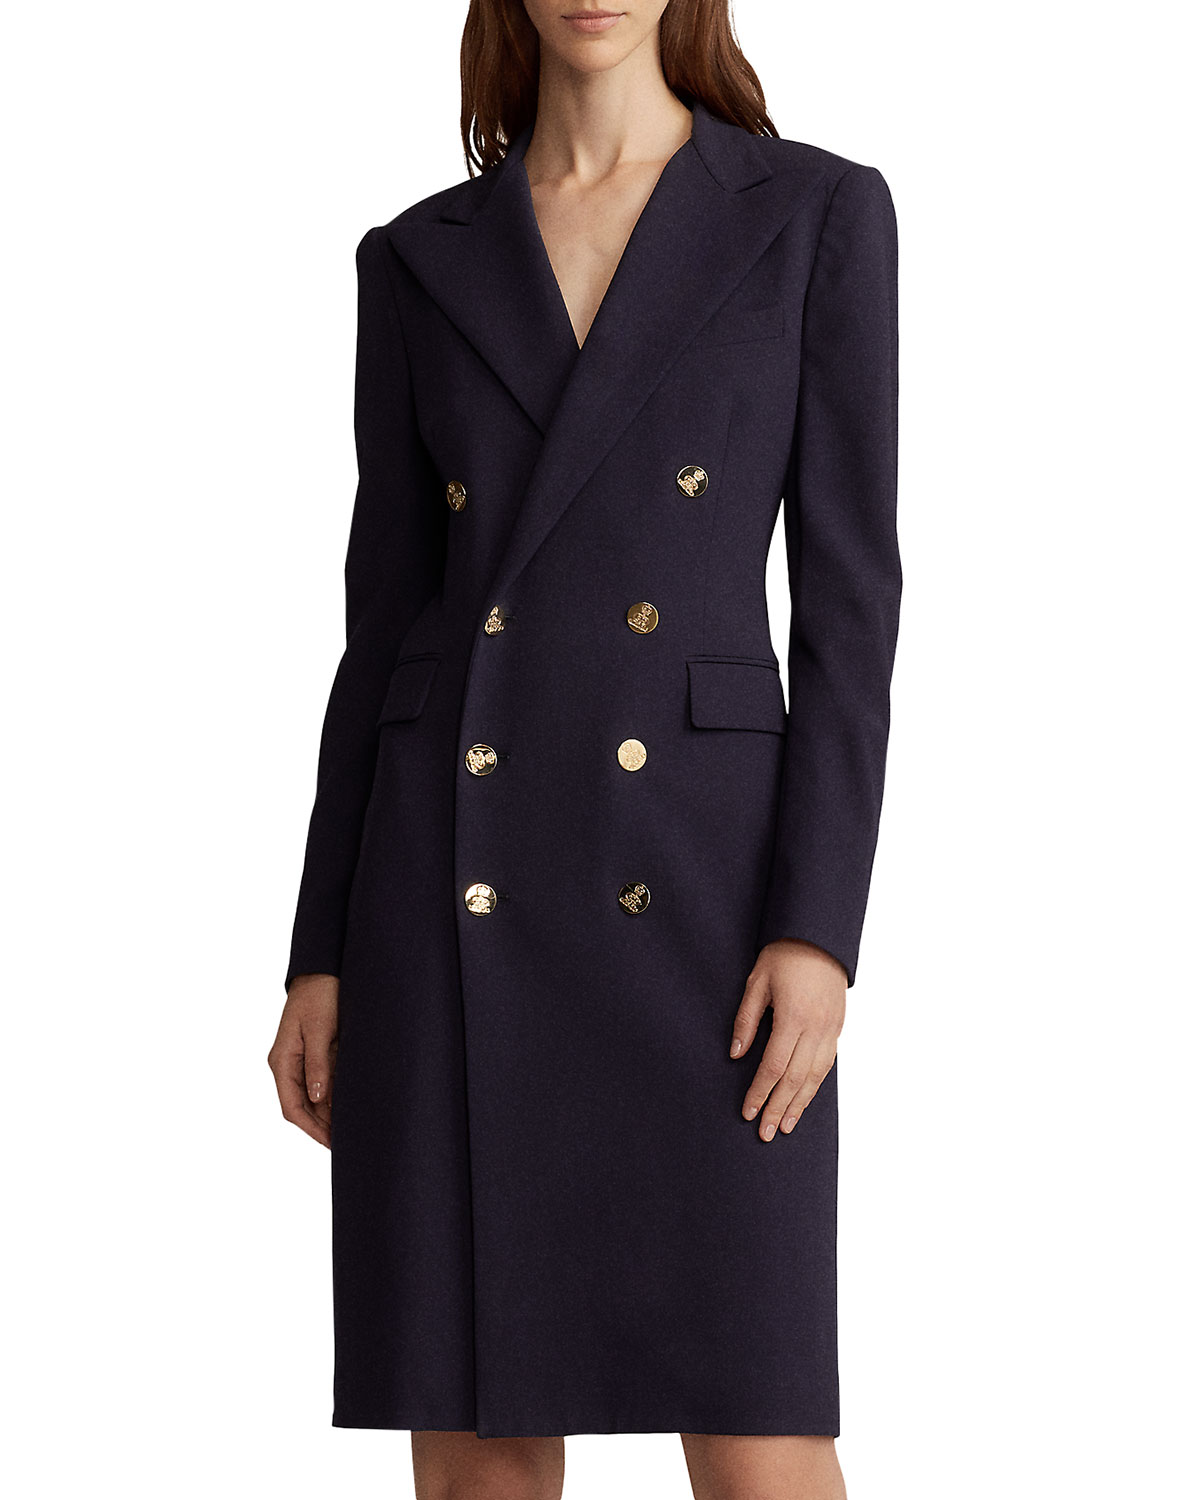 cd457b9edcb Ralph Lauren Collection Wellesley Double-Breasted Wool Coat Dress ...